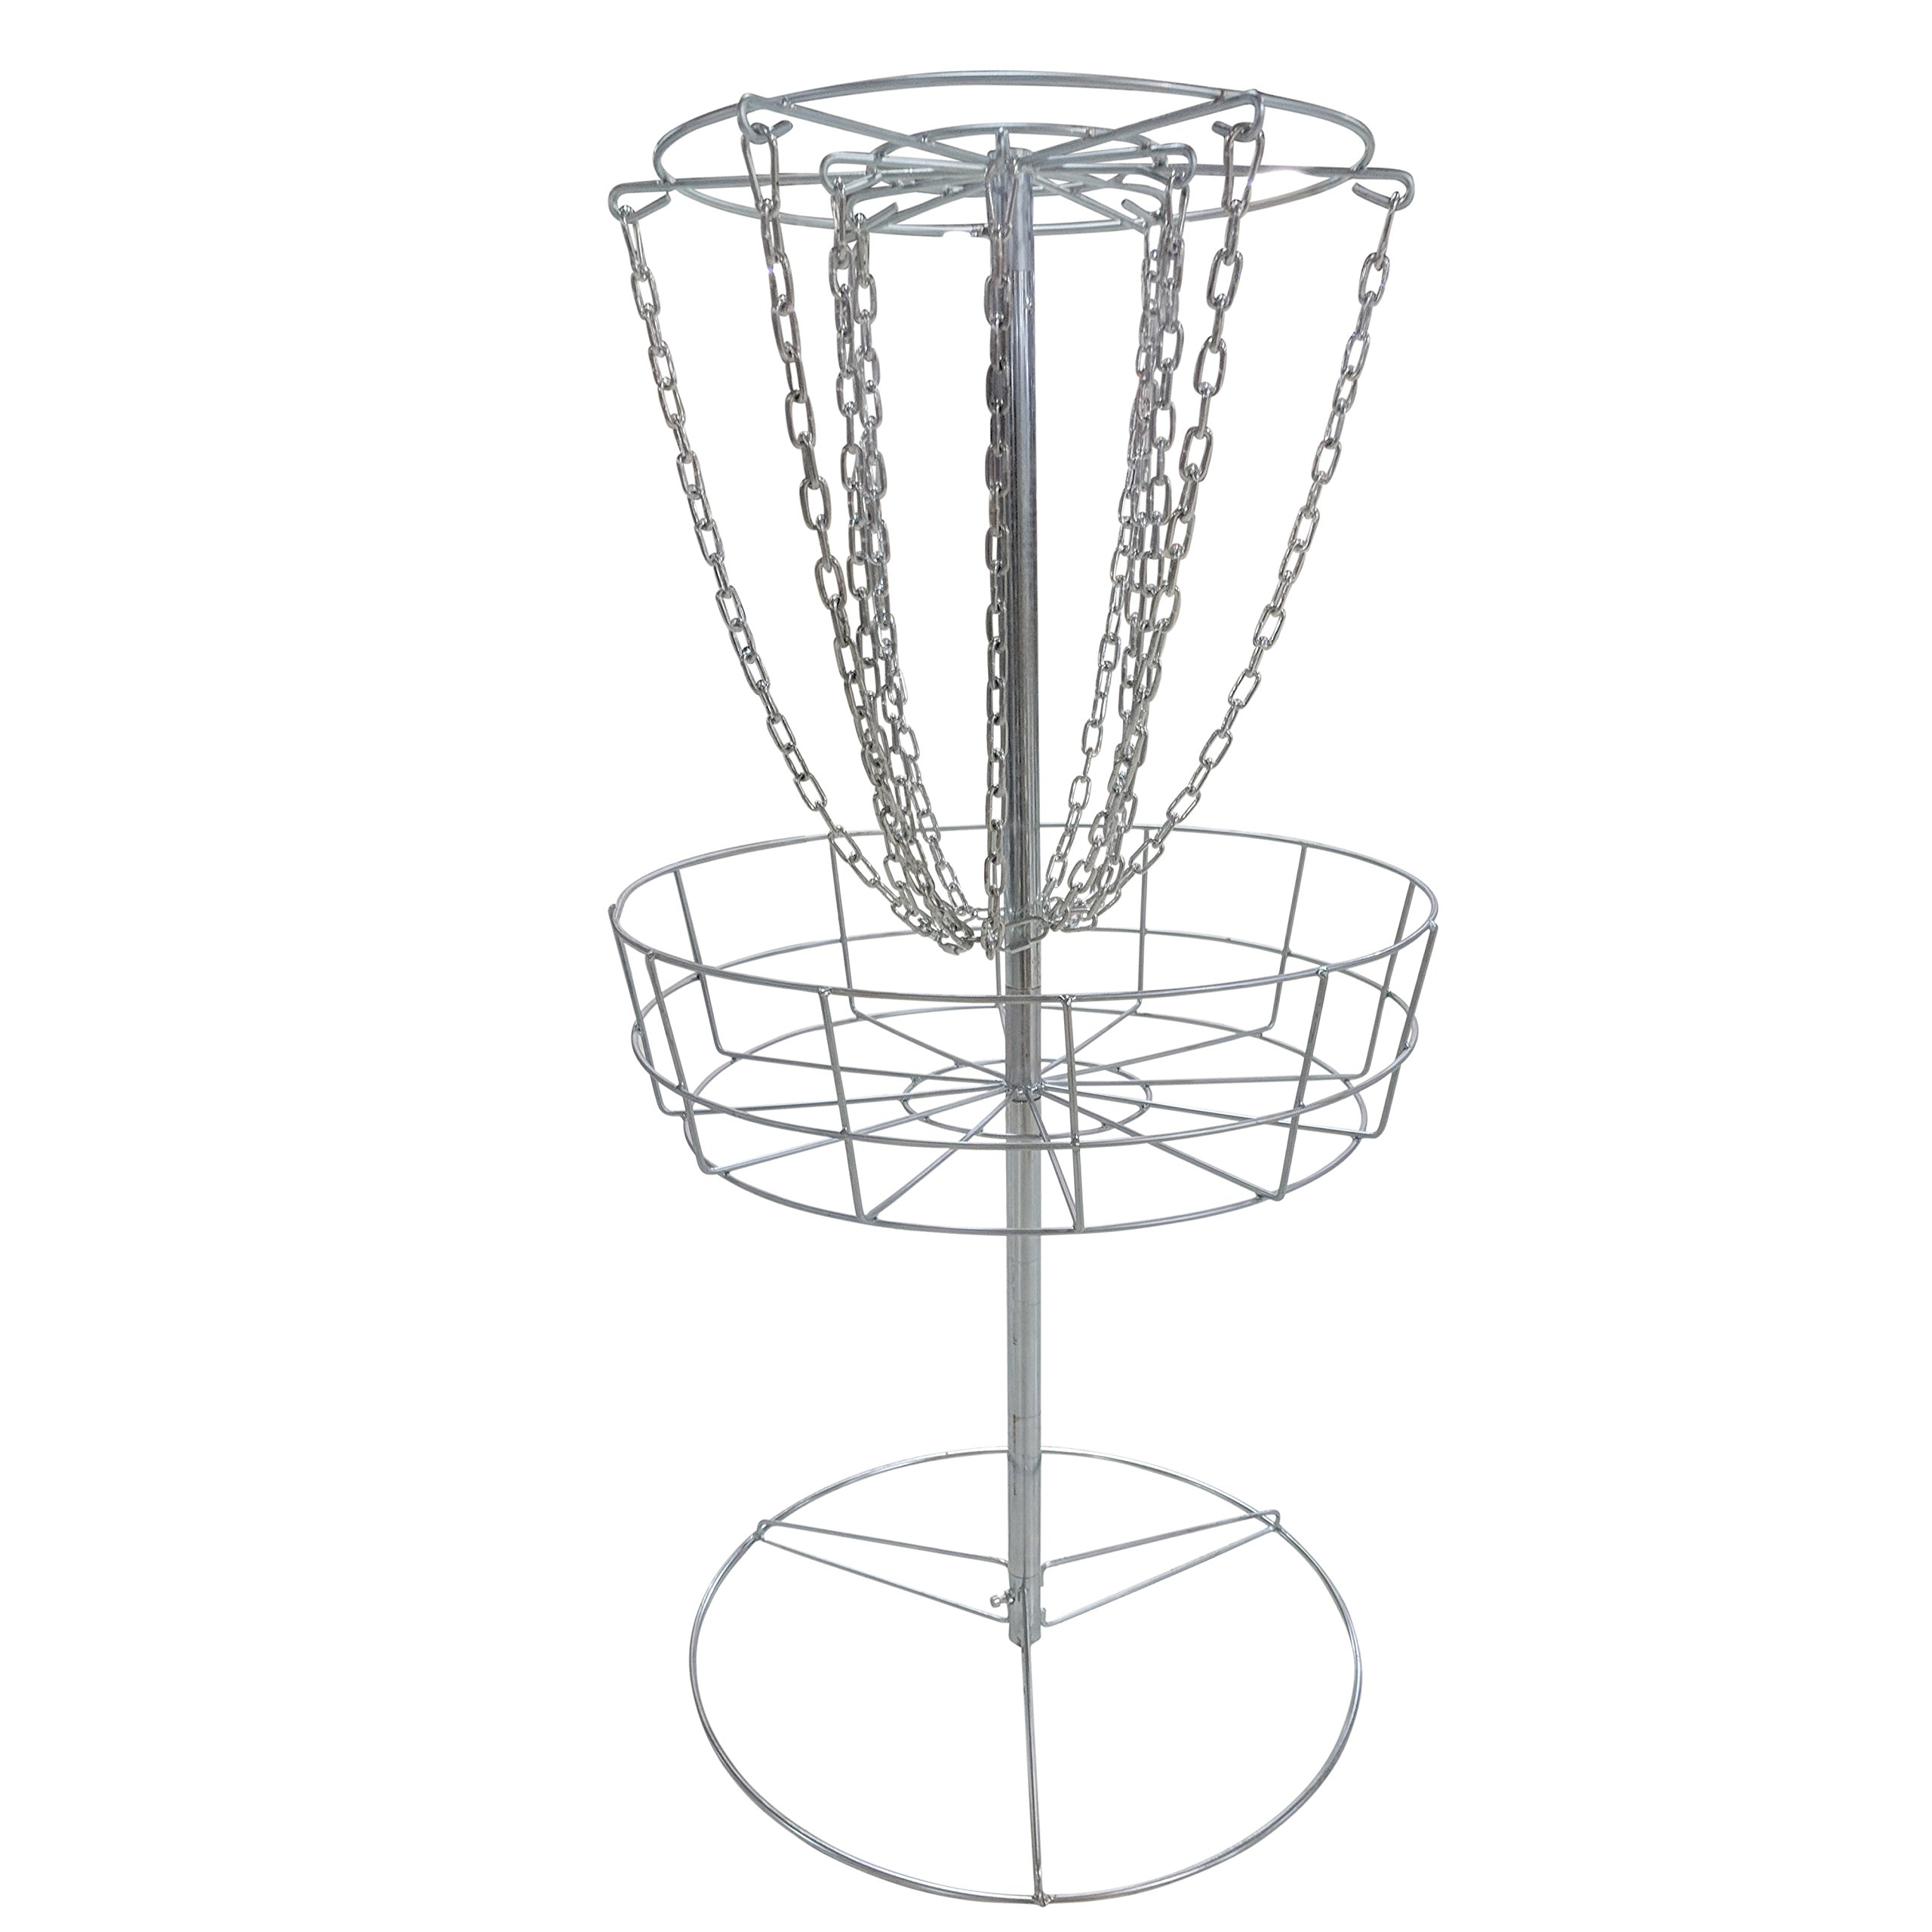 Titan Disc Golf Basket Double Chains Portable Practice Target Steel Frisbee Hole | V2